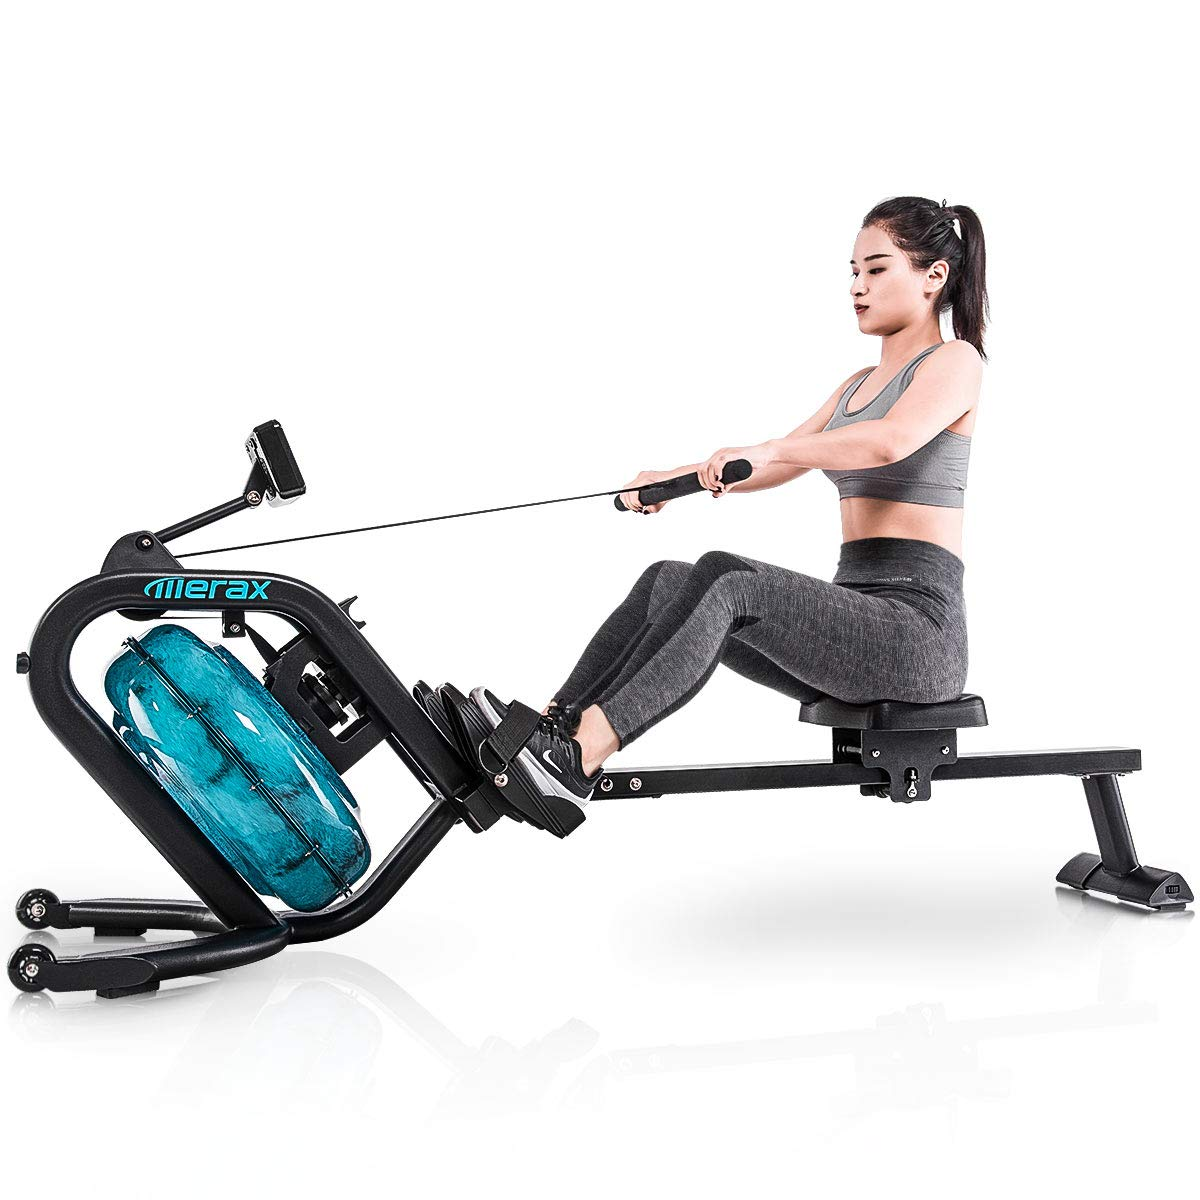 Merax Water Rowing Machine - Fitness Indoor Water Rower with LCD Monitor Home Gym Equipment (Black) by Merax (Image #1)